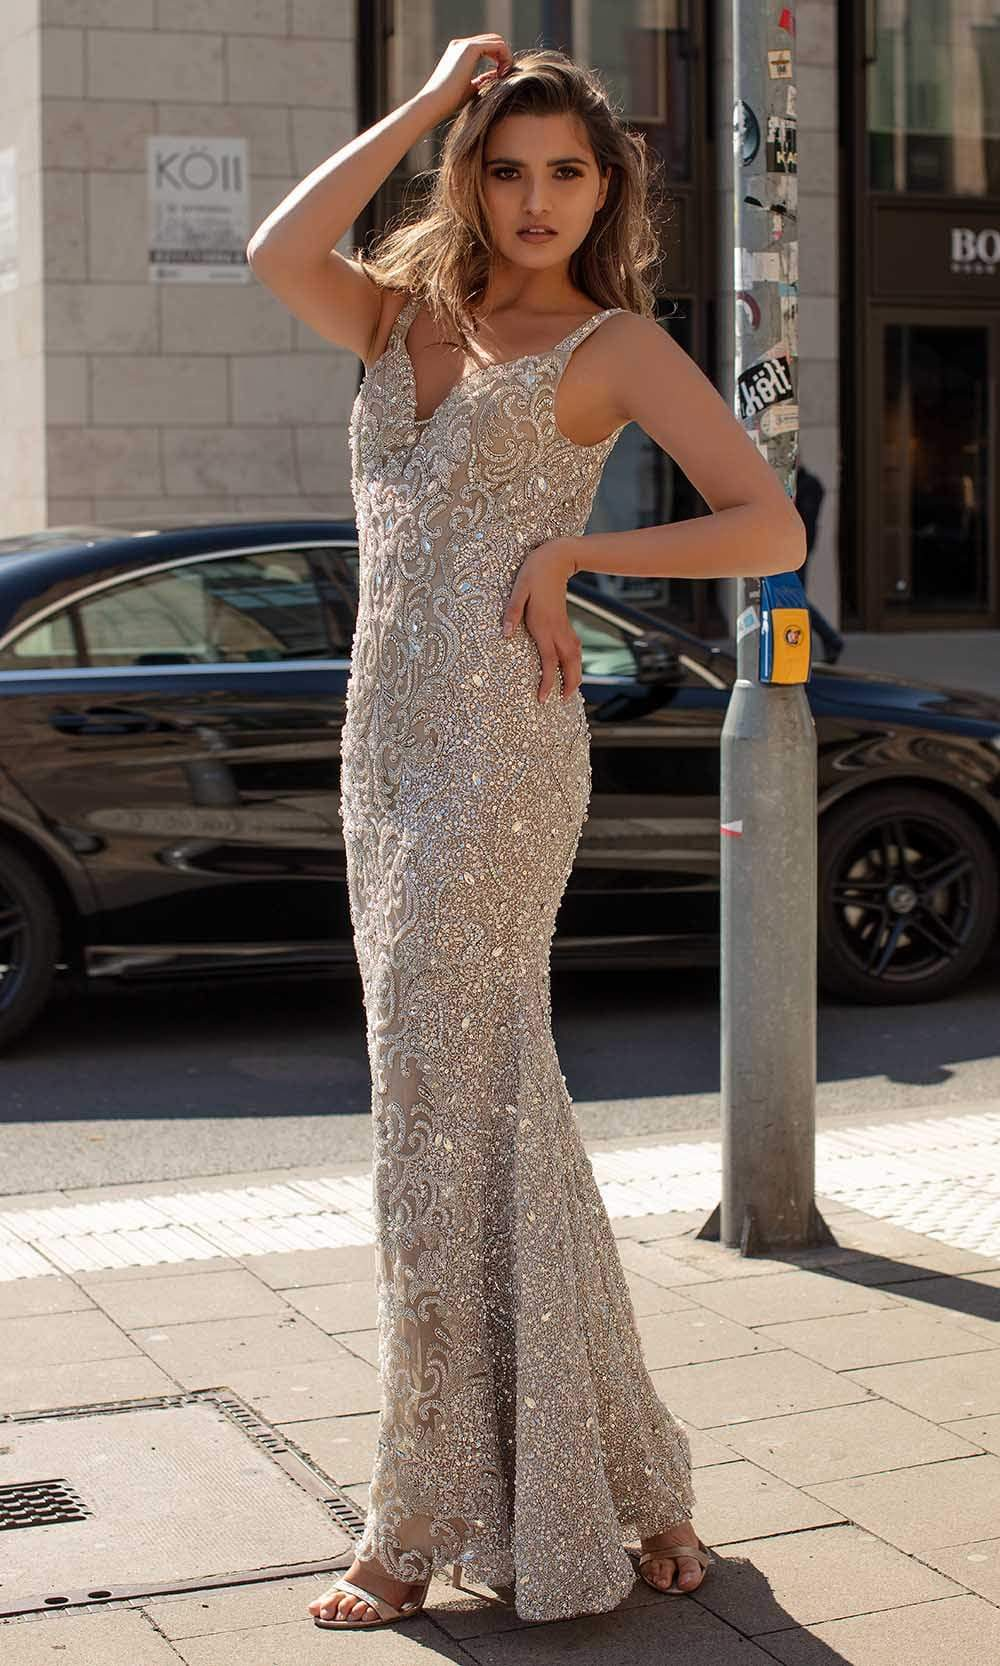 Chic and Holland - HF1539 Embellished Deep V Neck Long Gown from Chic and Holland